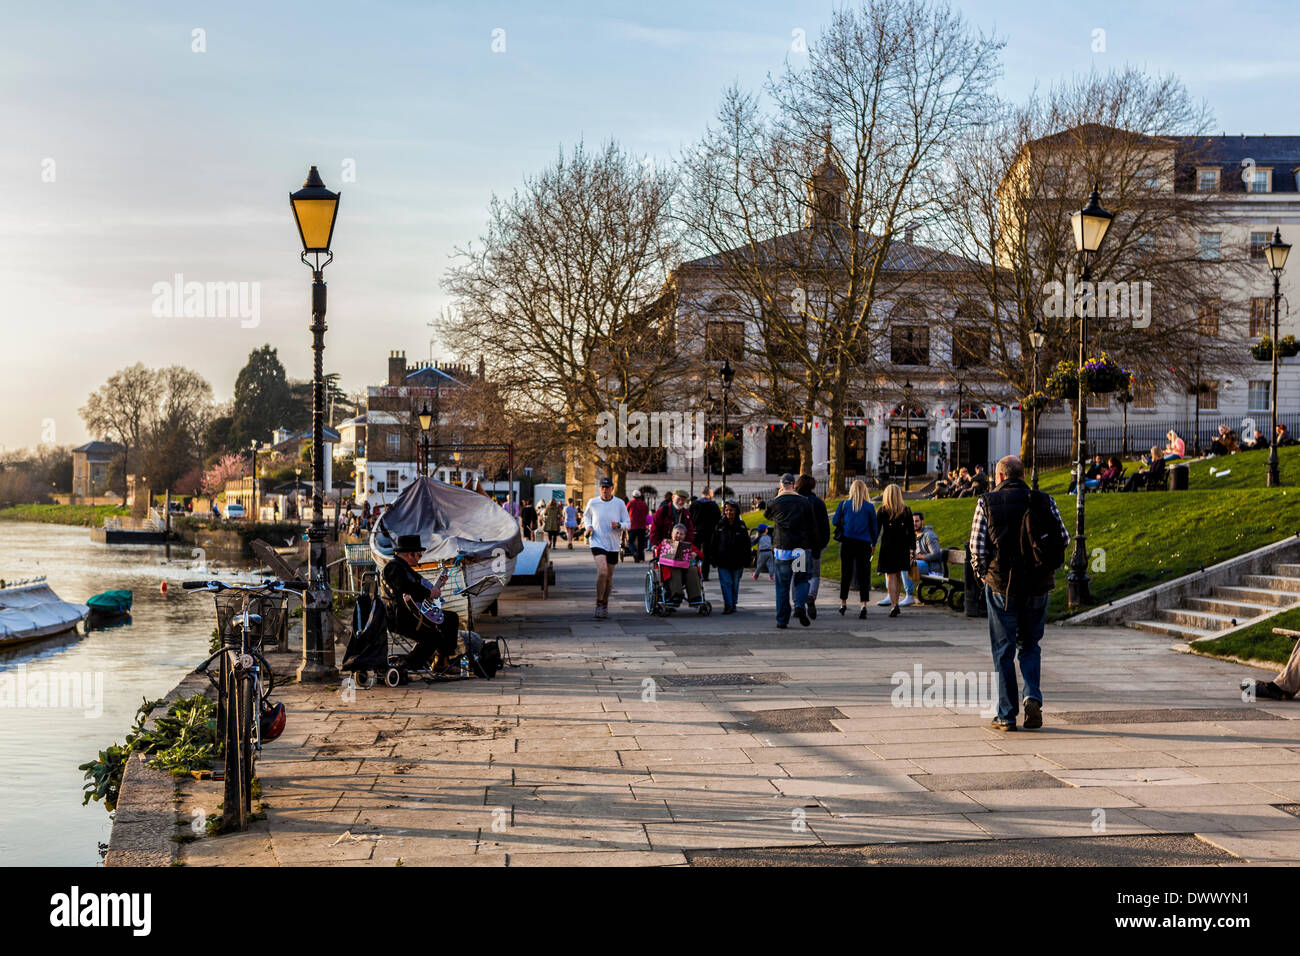 Richmond upon Thames, Greater London, UK,13th March 2014. The Capital is experiencing unusually warm weather in mid-march. Londoners shed their winter coats, boatmen dusted rowboats and tables and chairs appeared outside riverside bars and cafes  as temperatures reached pleasant highs this week. Credit:  Eden Breitz/Alamy Live News - Stock Image